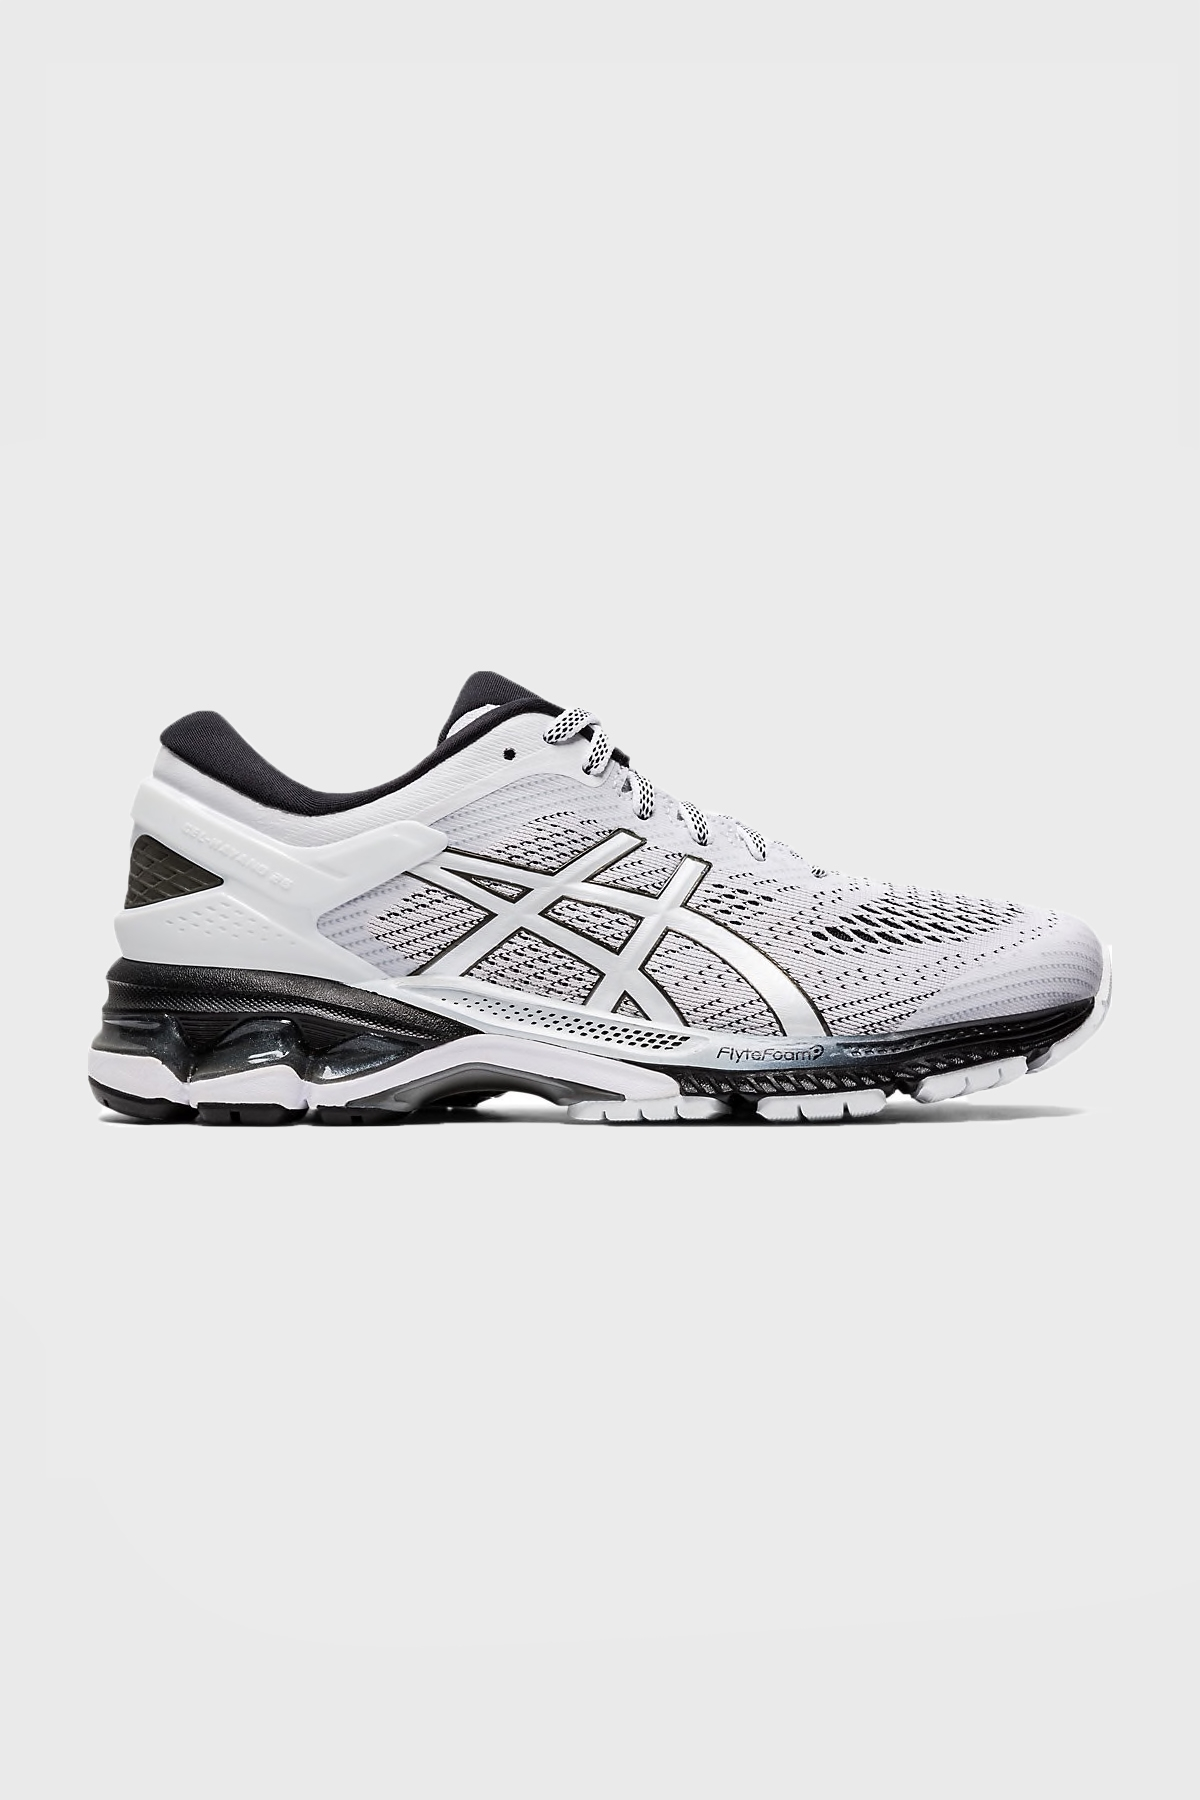 Asics W - Gel Kayano 26 - White black